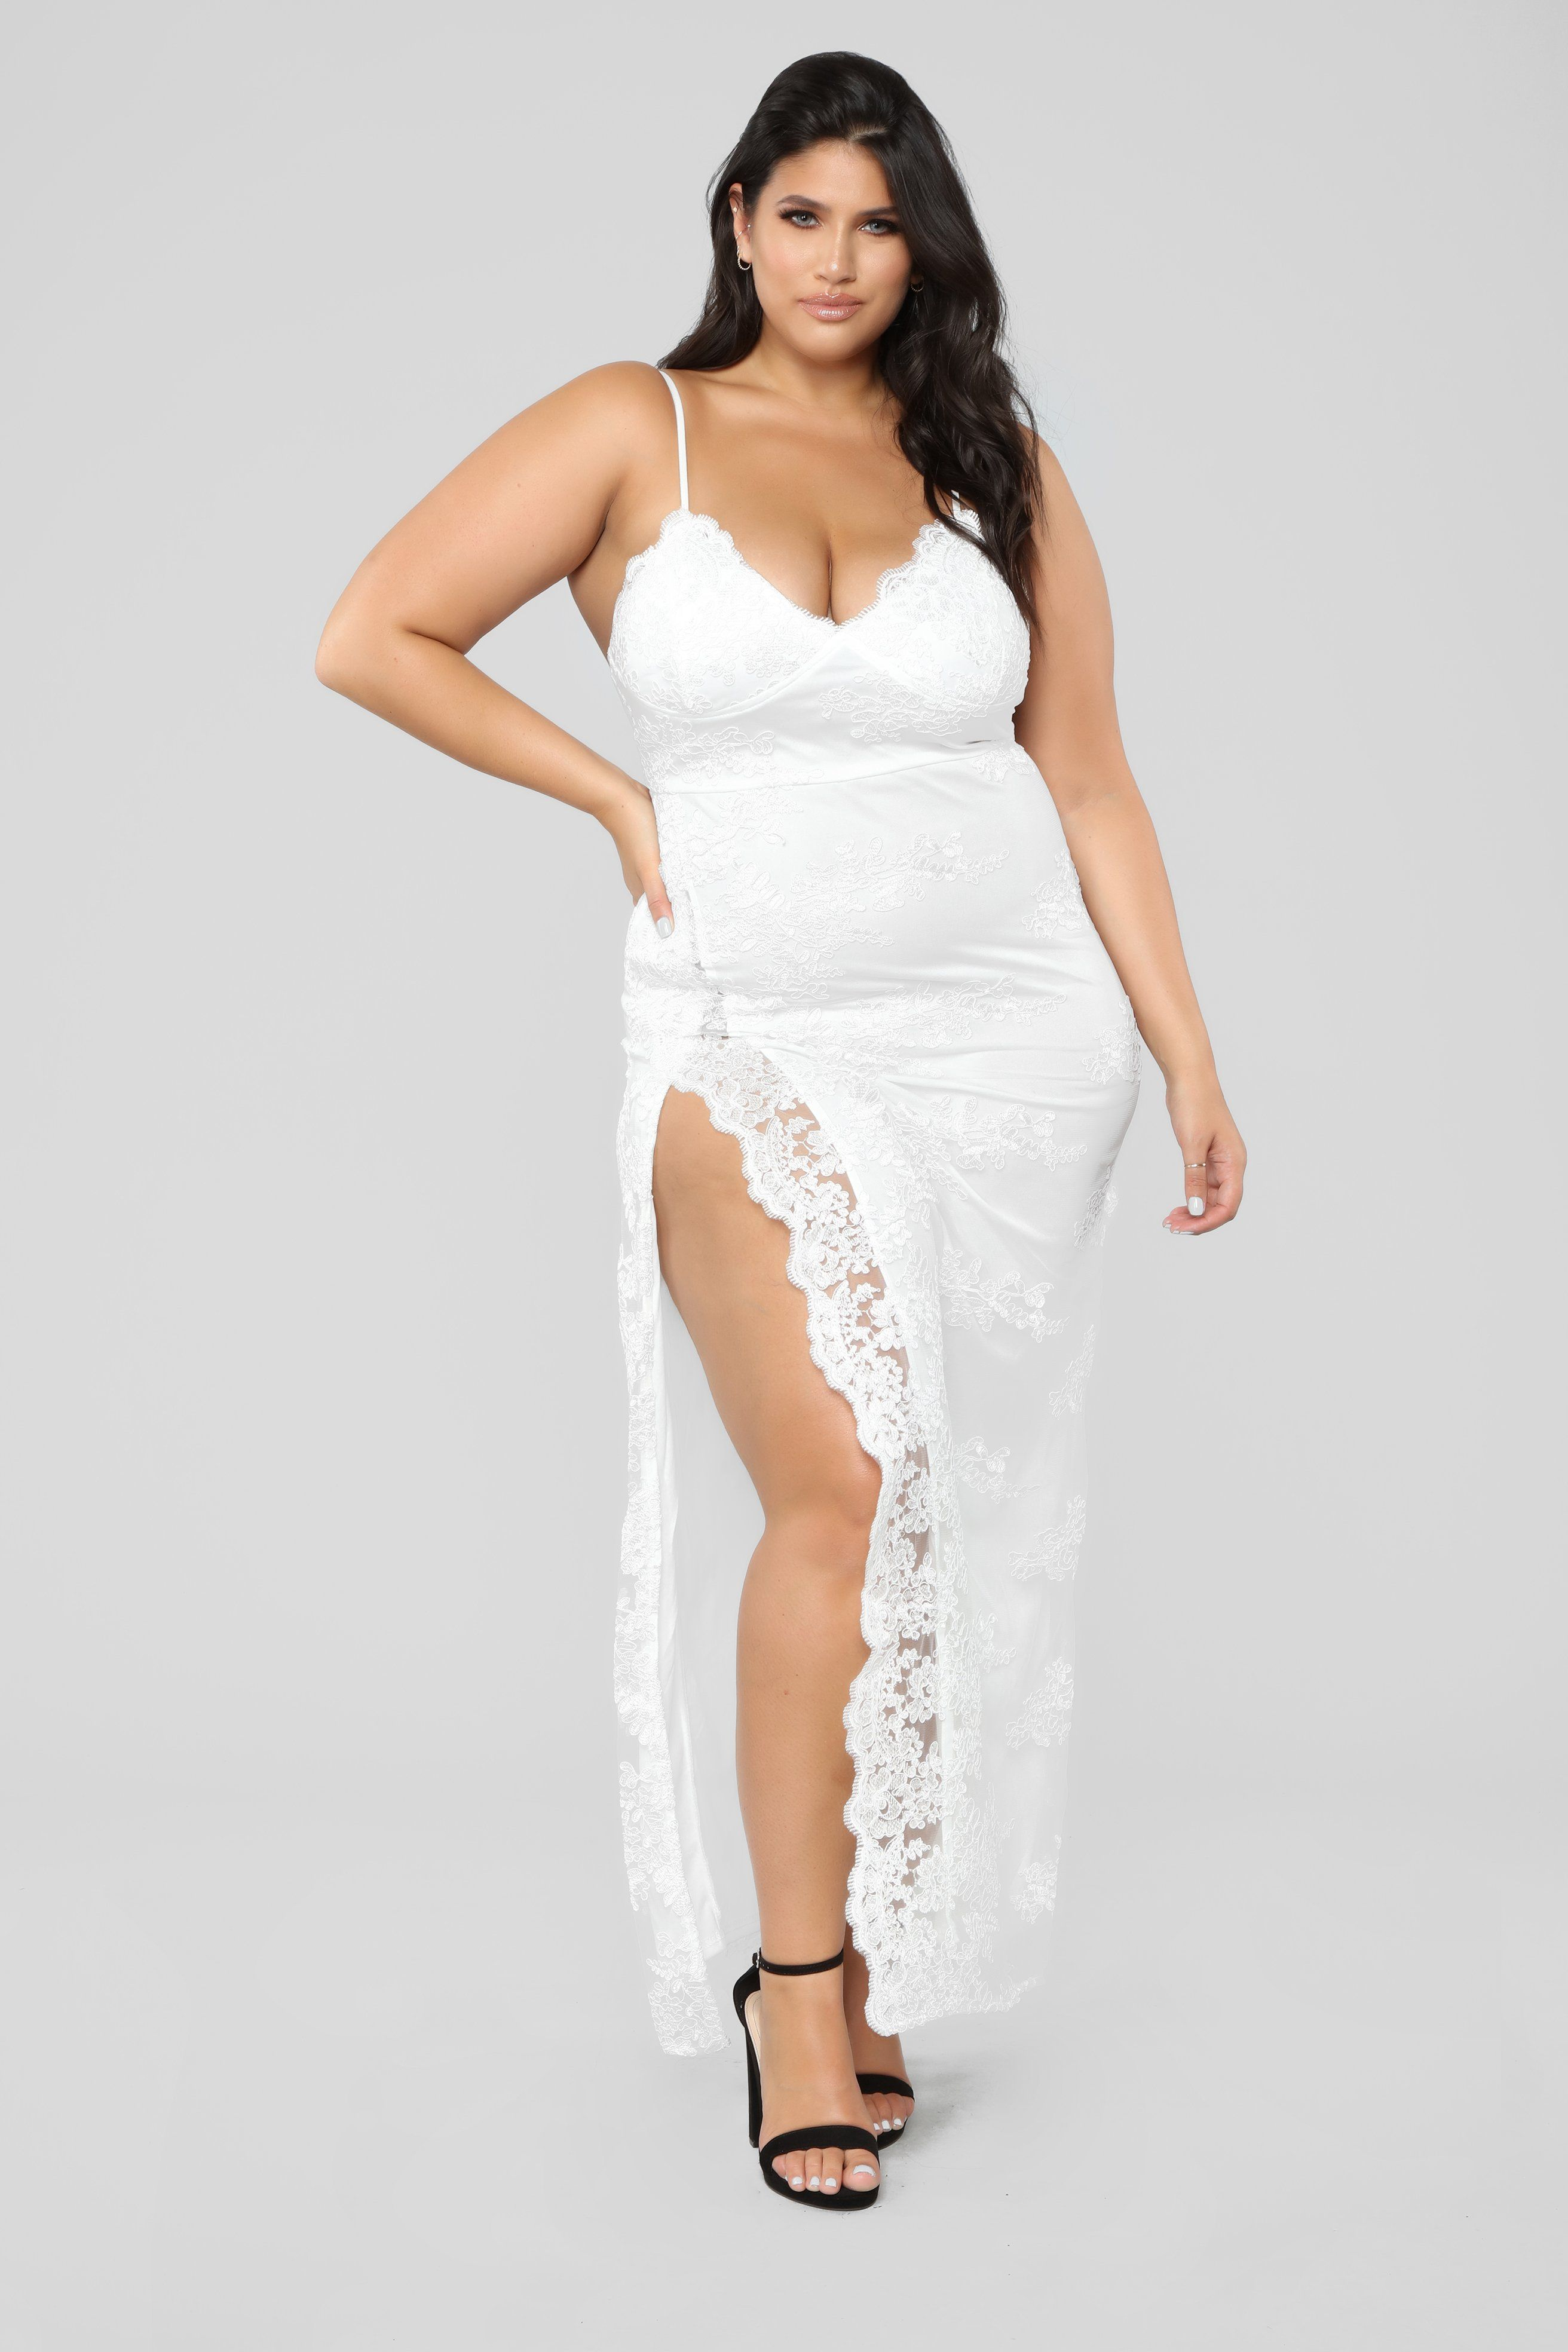 5bb97d96f326 A Night In Tokyo Lace Dress - White White Lace Maxi Dress